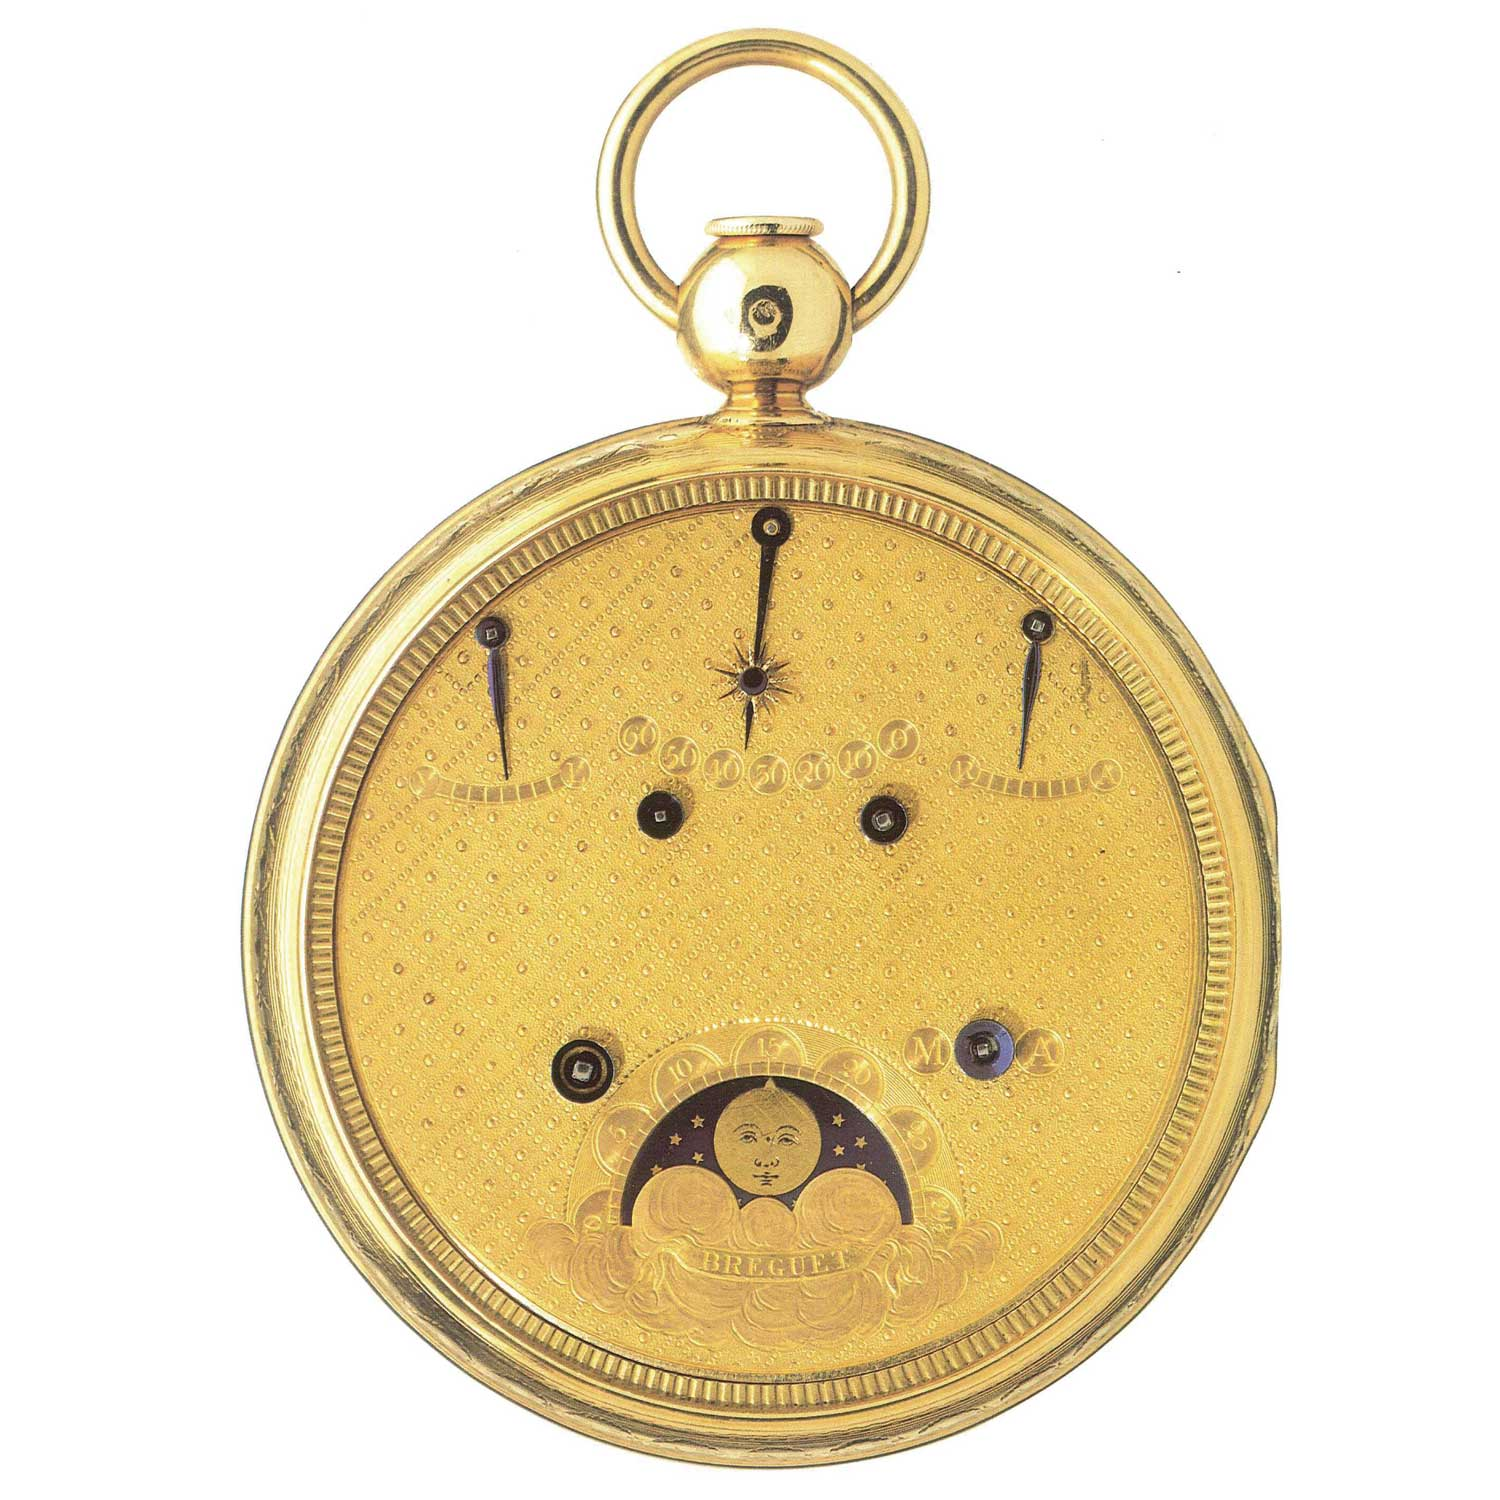 Double-sided Breguet watch, Grand Complication No. 92. On the white enamel dial are indicators showing the day, date and month, as well as equation of time